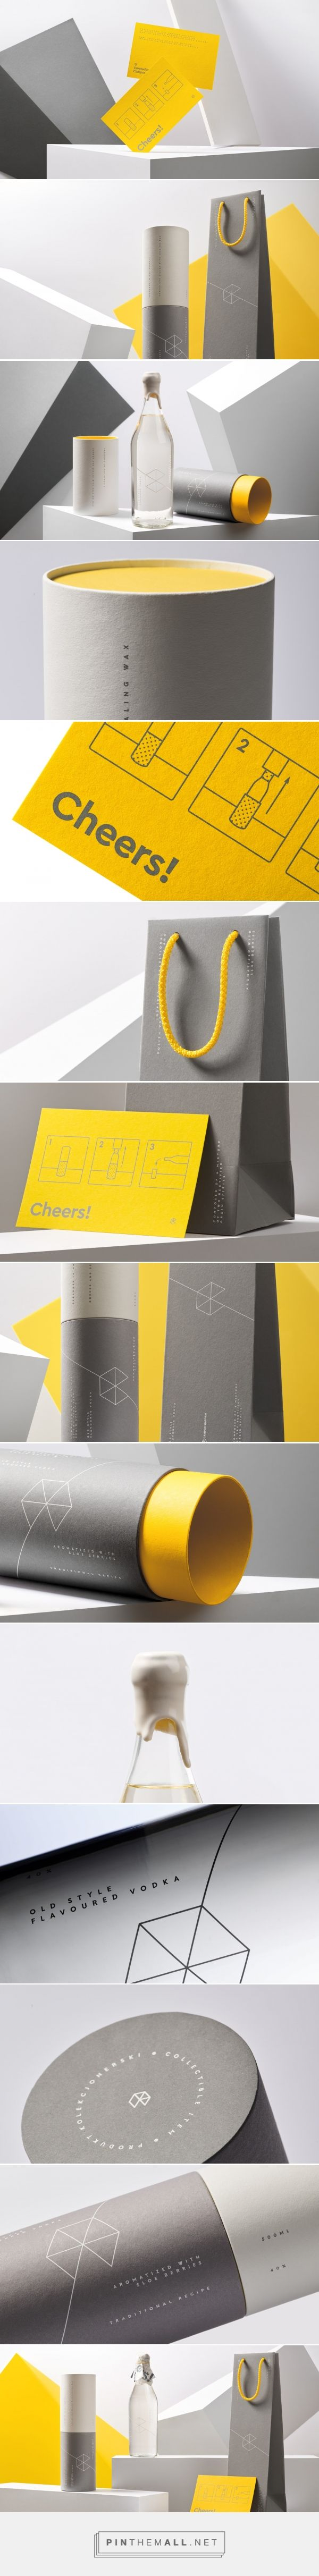 Google Campus: Old Style Flavoured Vodka packaging design by Redkroft - http://www.packagingoftheworld.com/2017/03/google-campus-old-style-flavoured-vodka.html